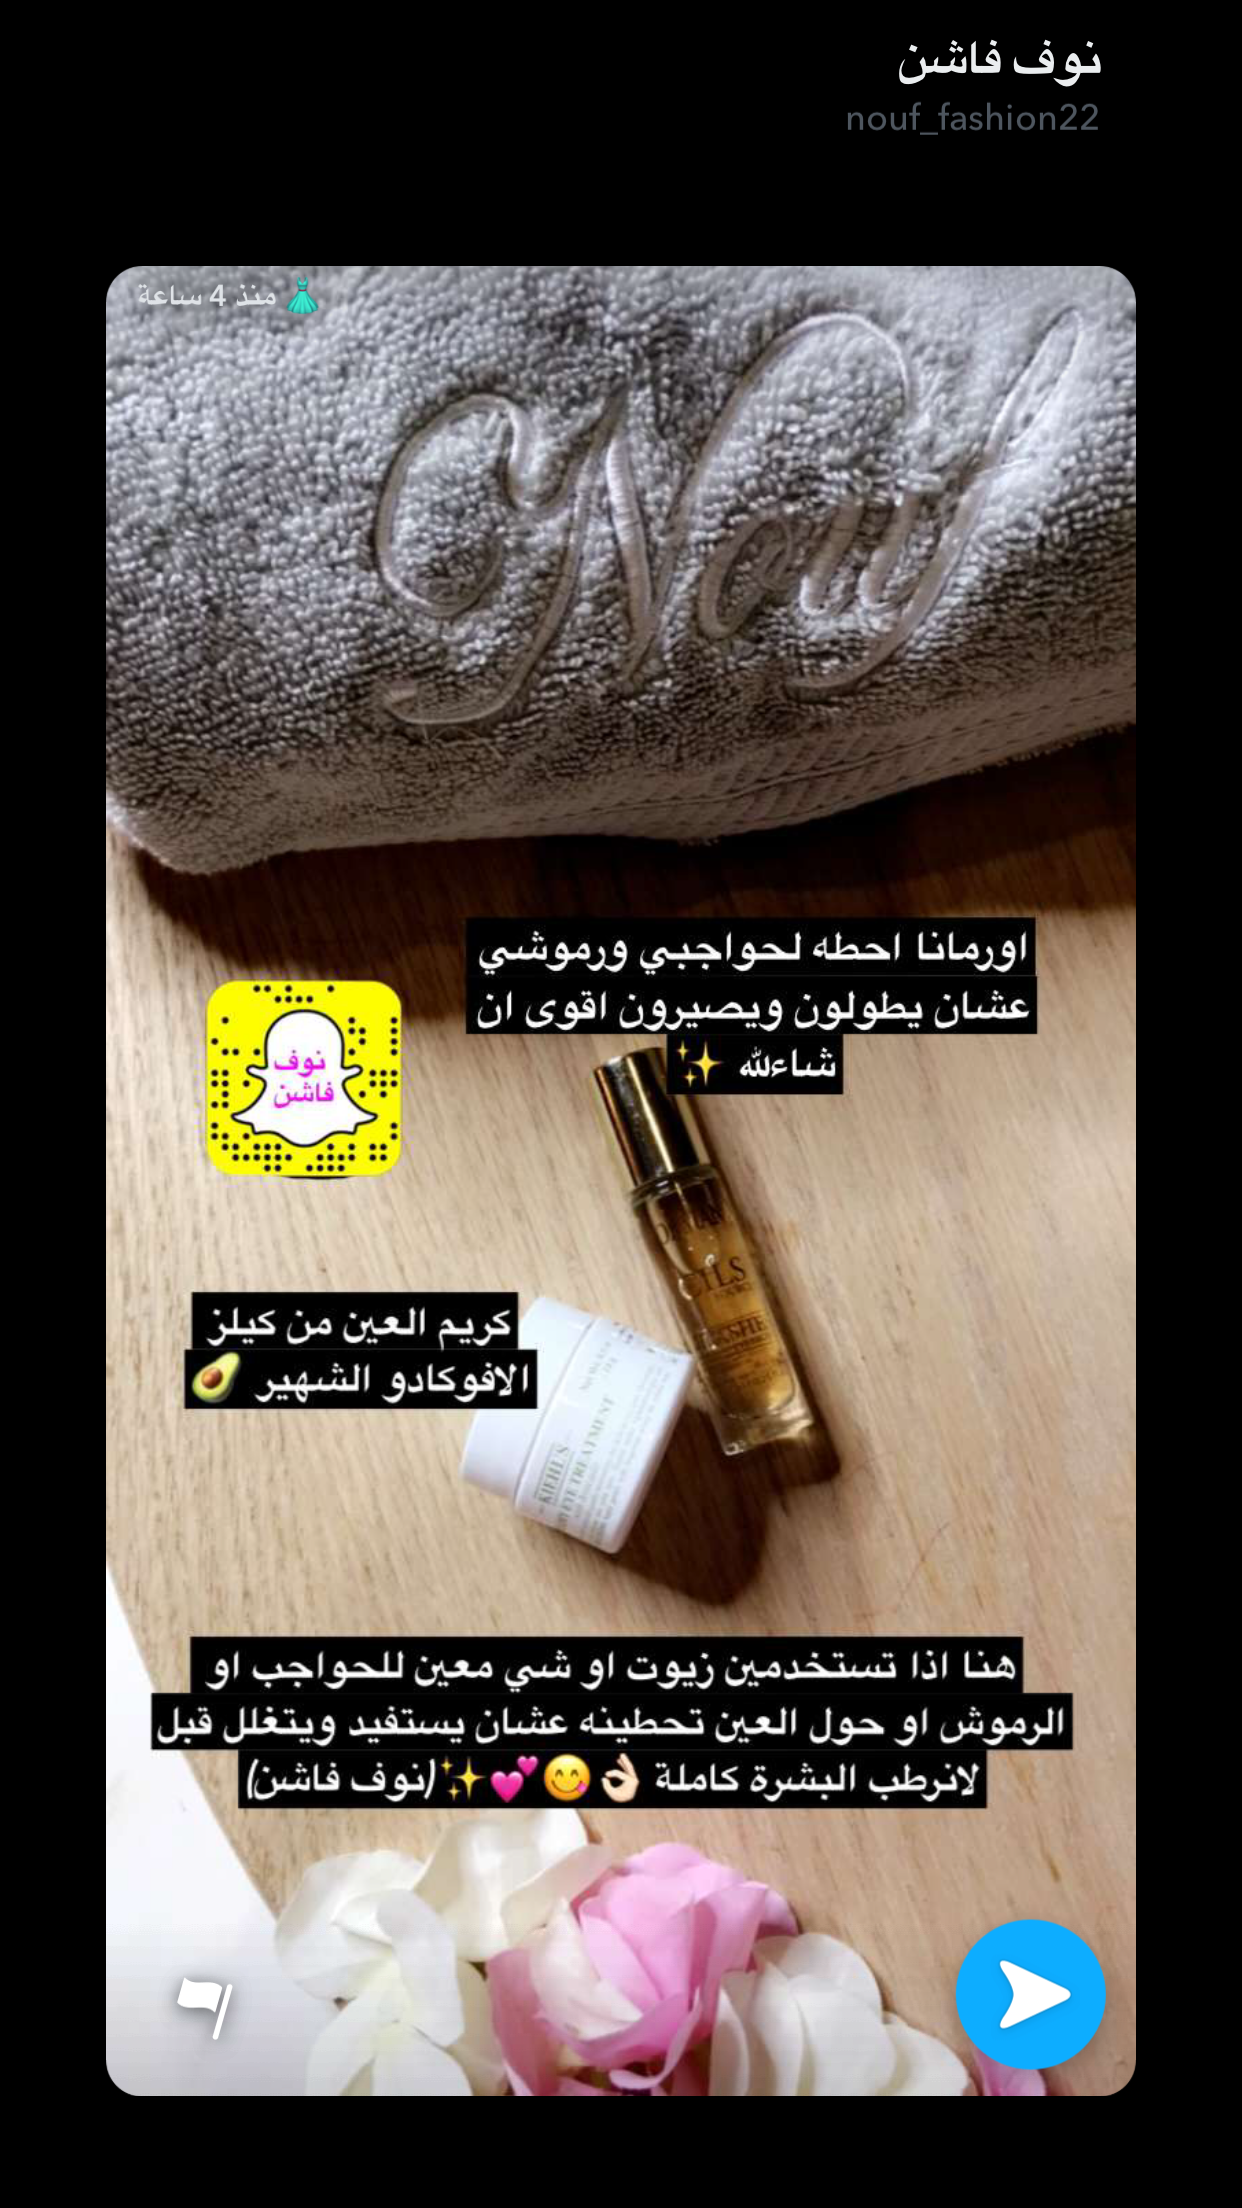 Pin By Sheeren On فلاش Skin Care Women Routine Healthy Recipes